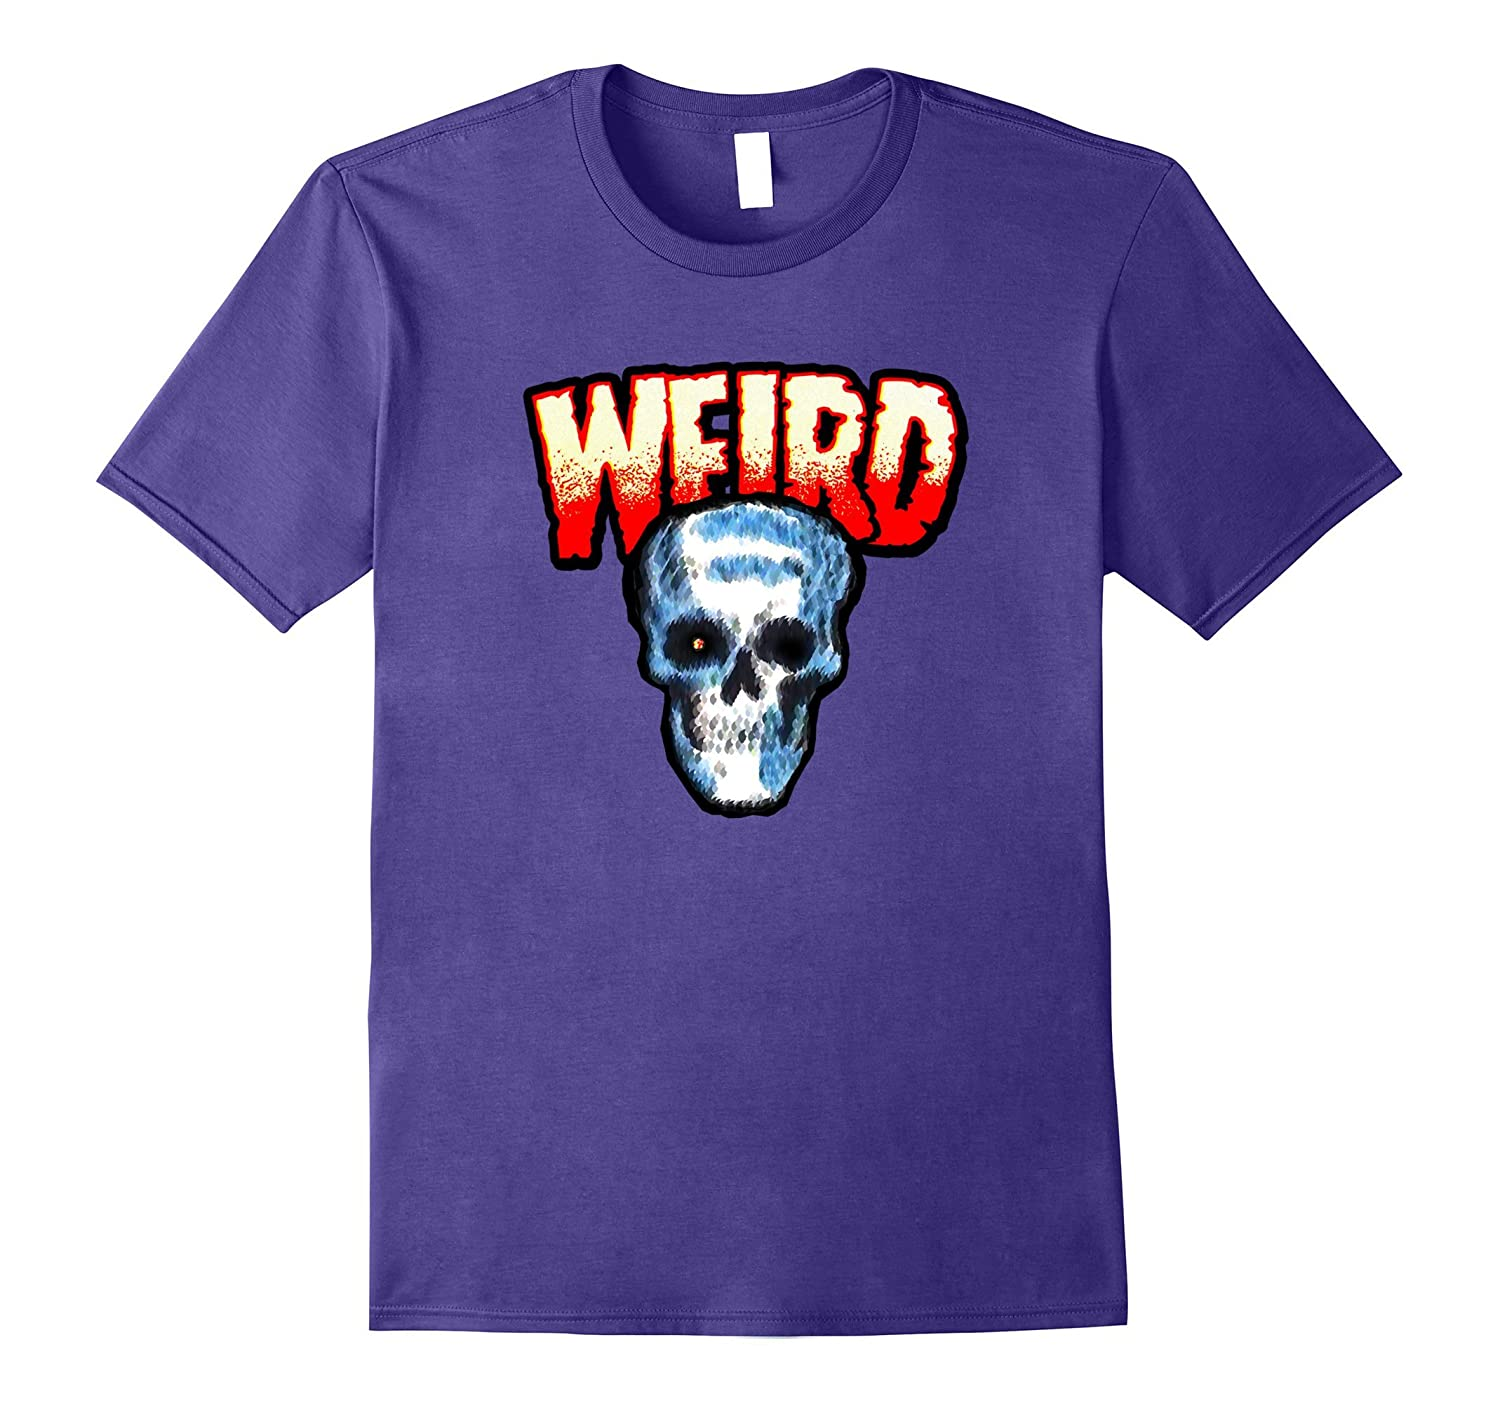 Scary Weird Skull Ghost Horror Comic T-Shirt-TJ